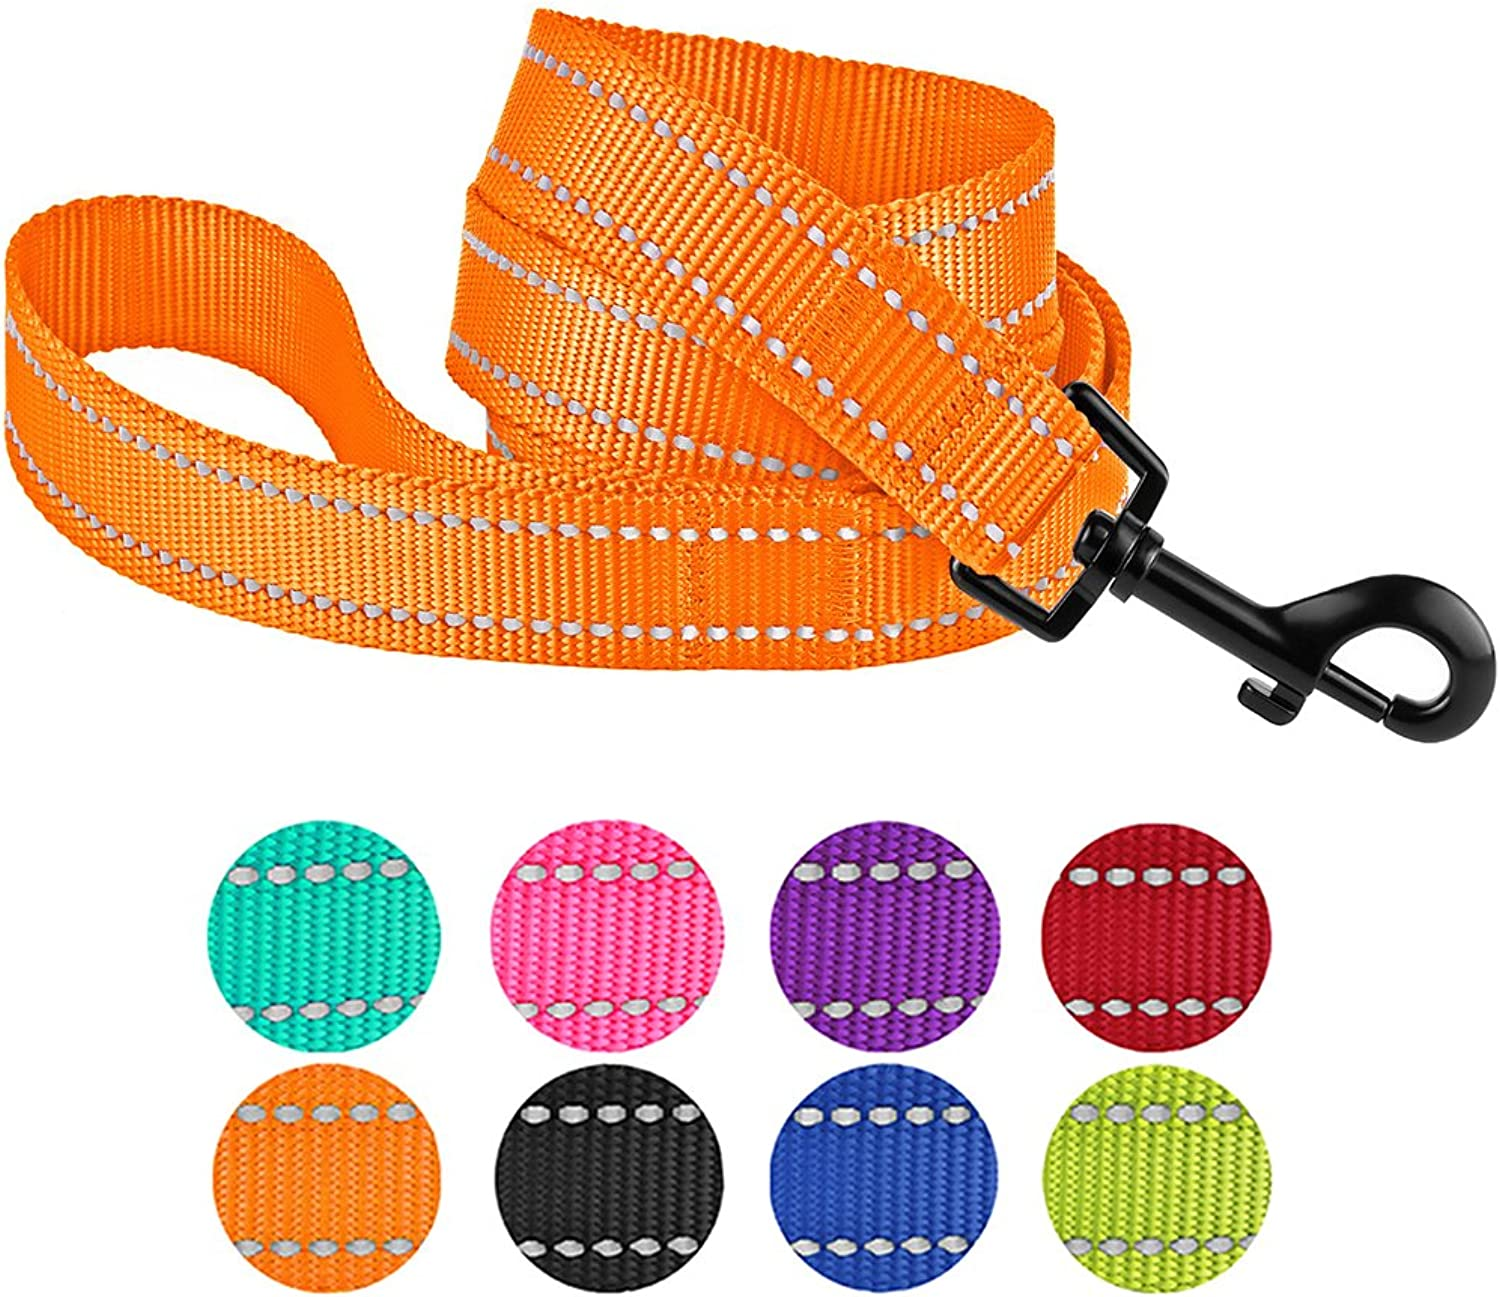 CollarDirect Nylon Dog Leash 5ft for Daily Outdoor Walking Running Training Heavy Duty Reflective Pet Leashes for Large, Medium & Small Dogs (M, orange)